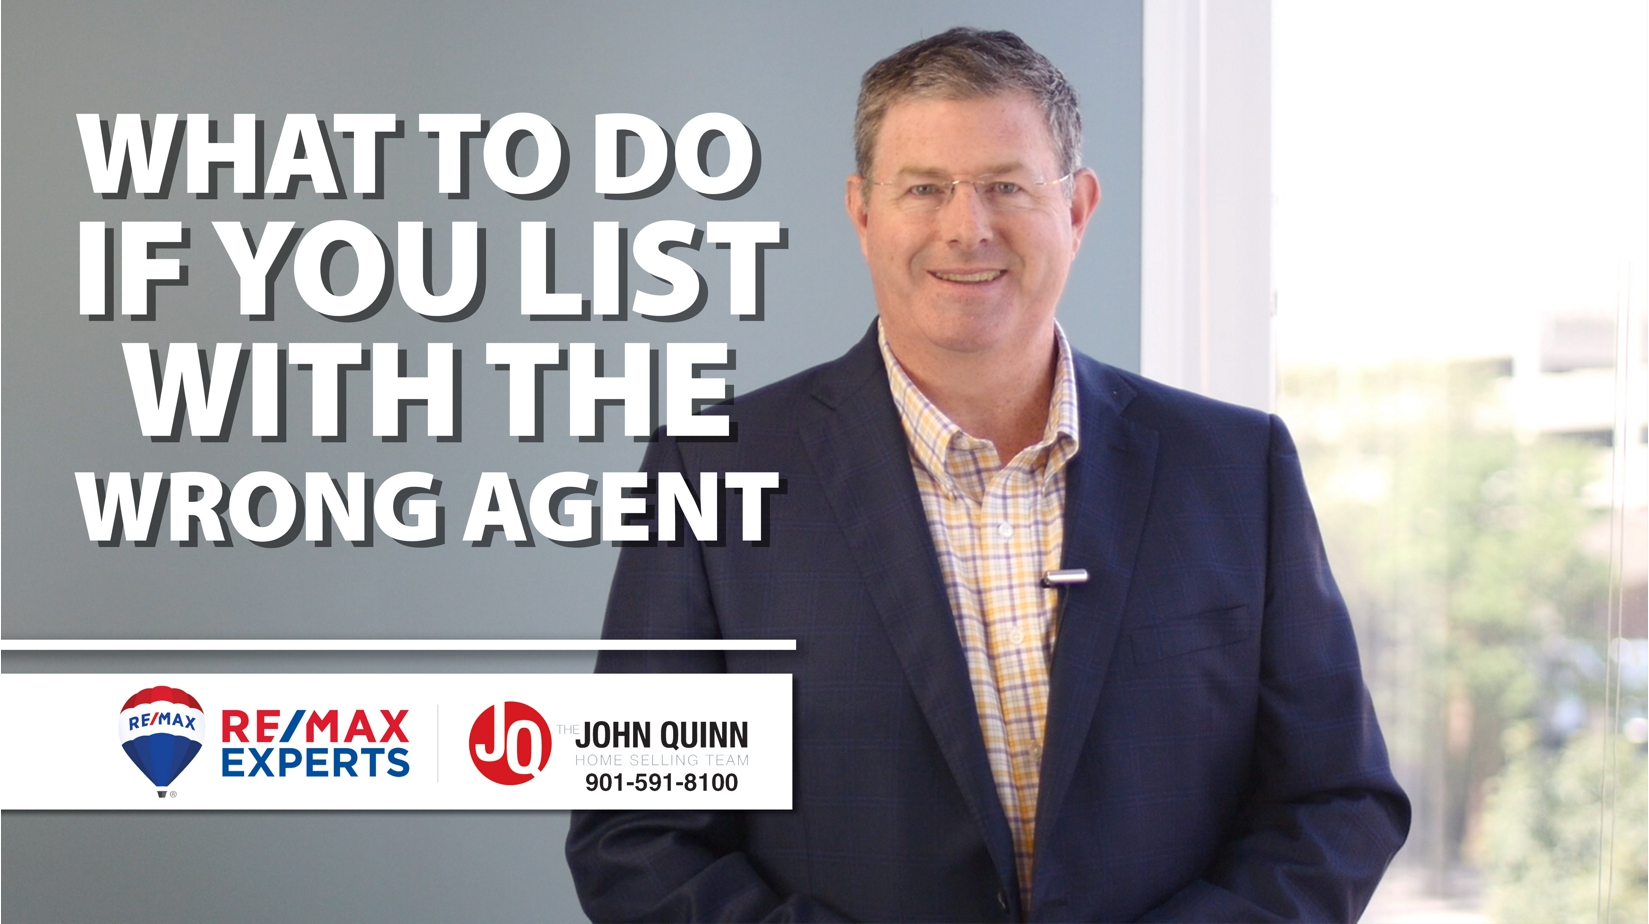 What to Do if You List With the Wrong Agent